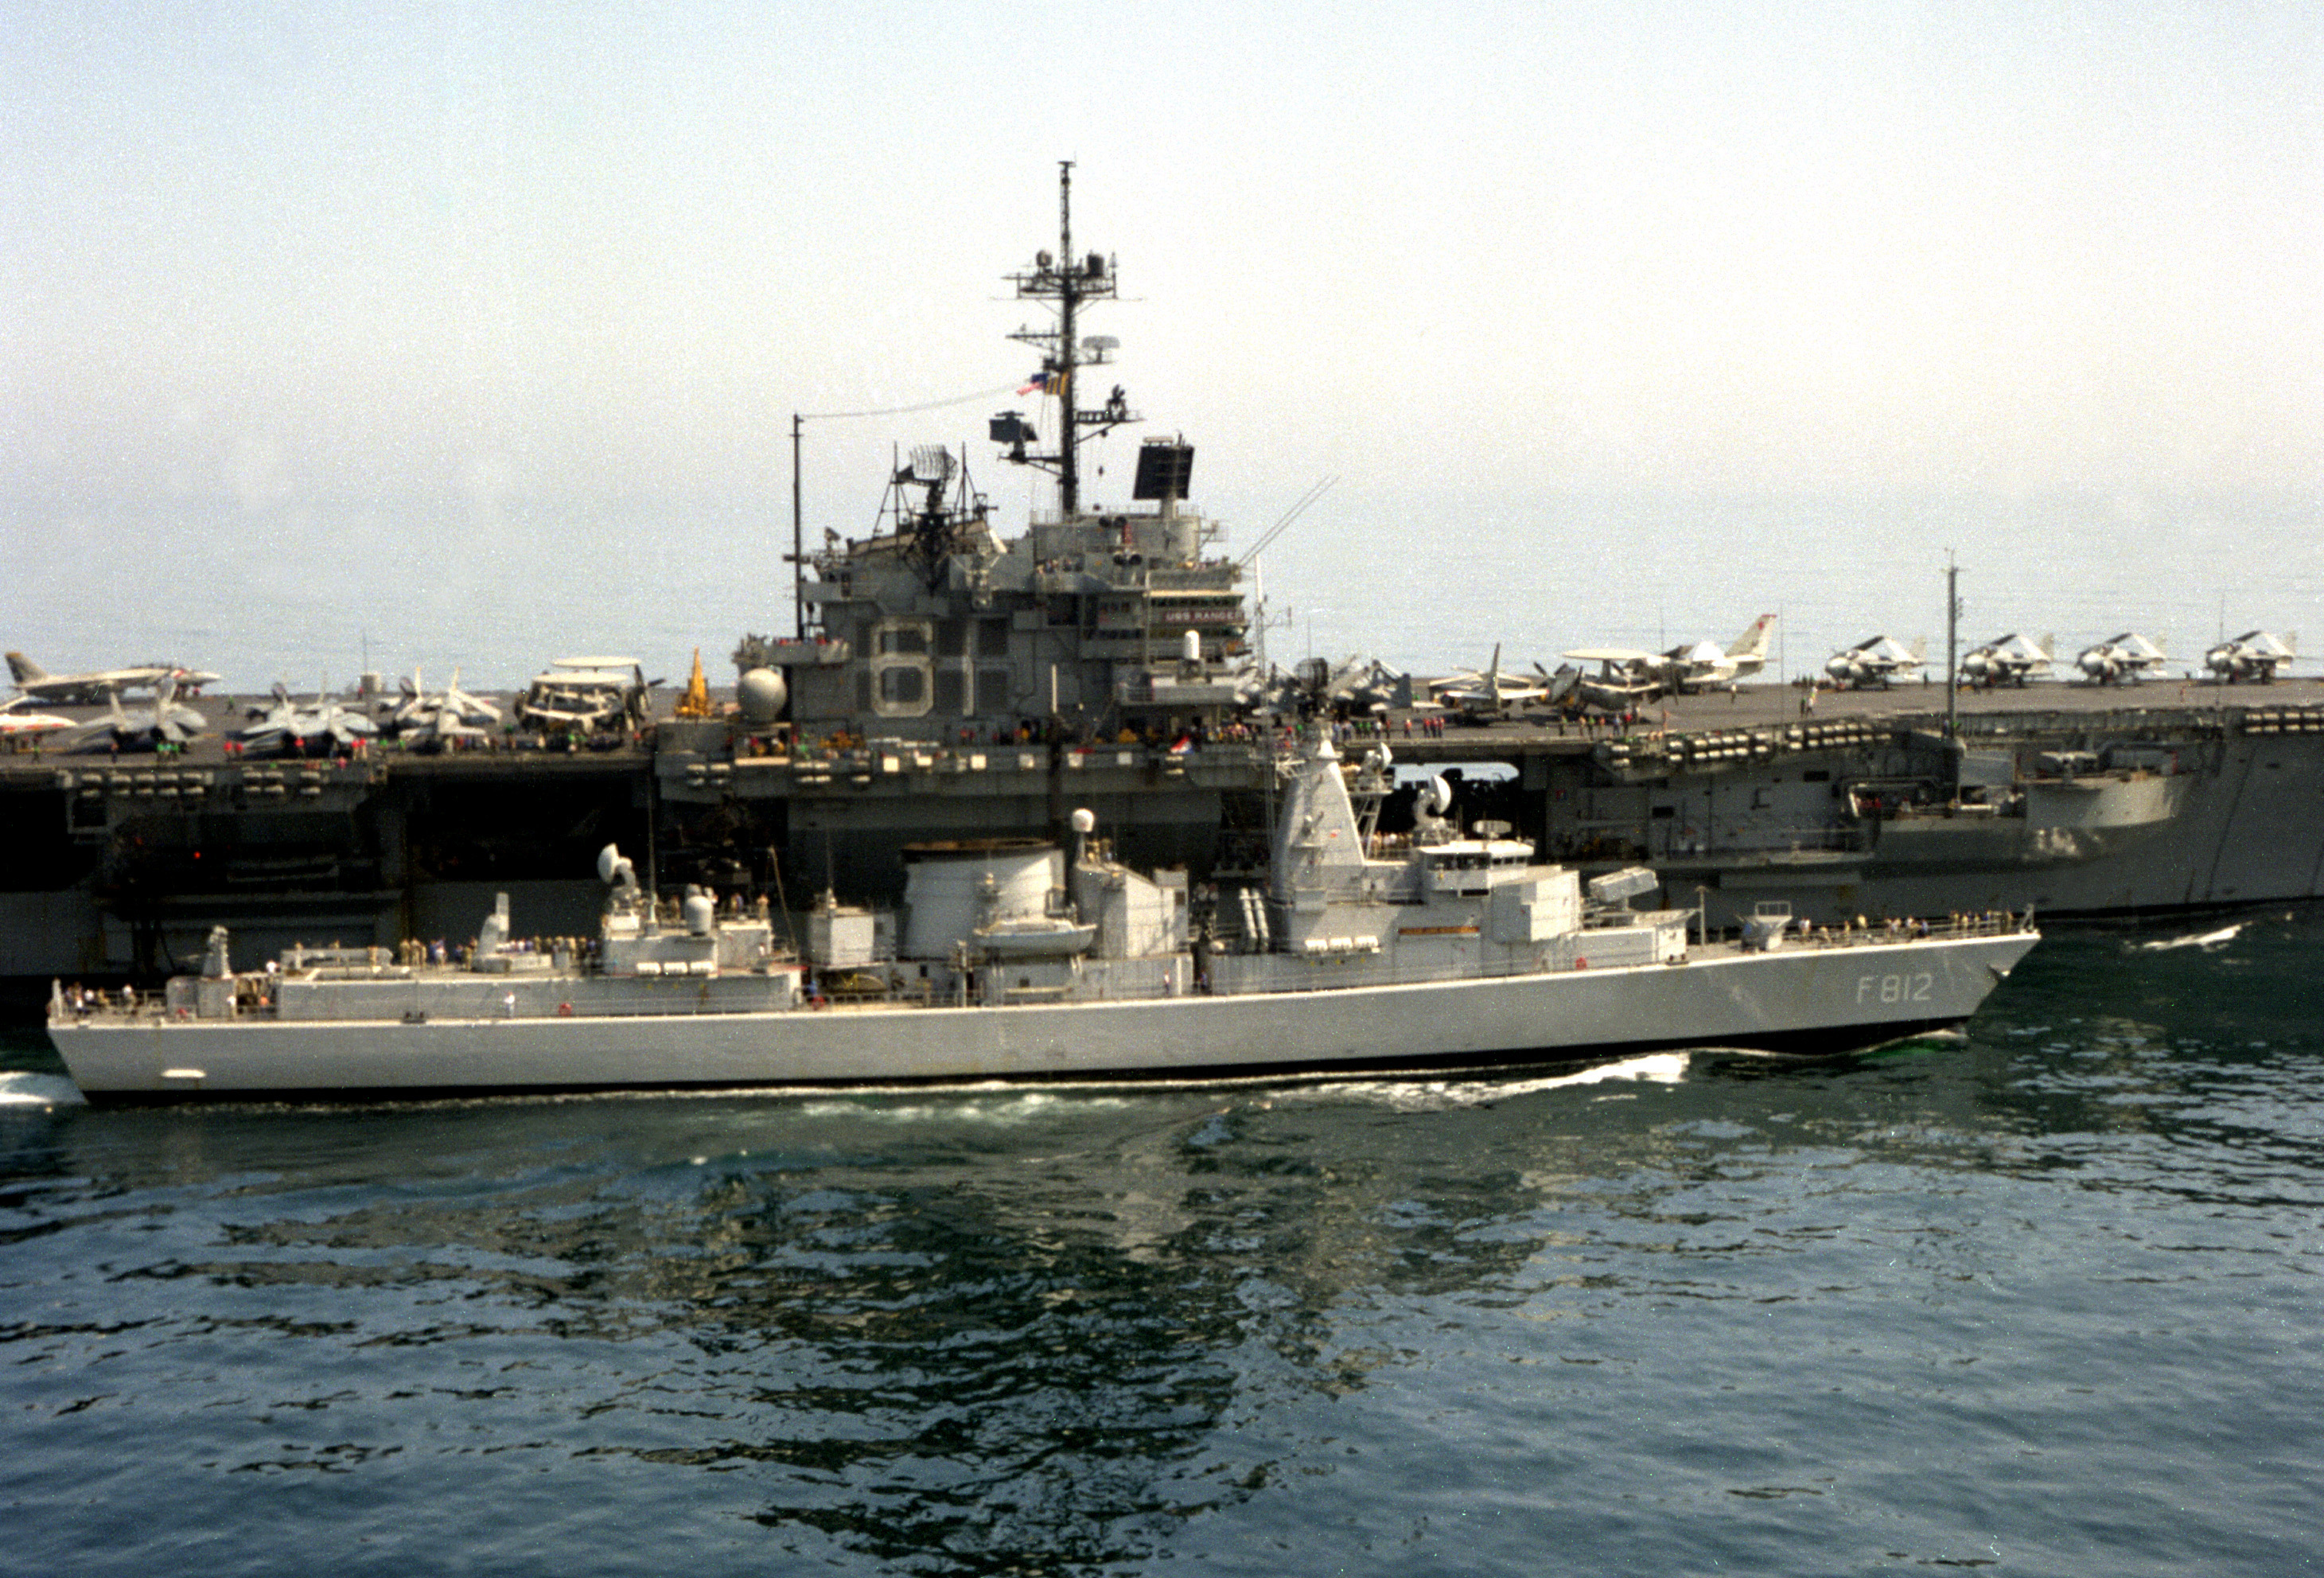 file dutch frigate f812 jacob van heemskerck operates alongside the aircraft carrier uss ranger